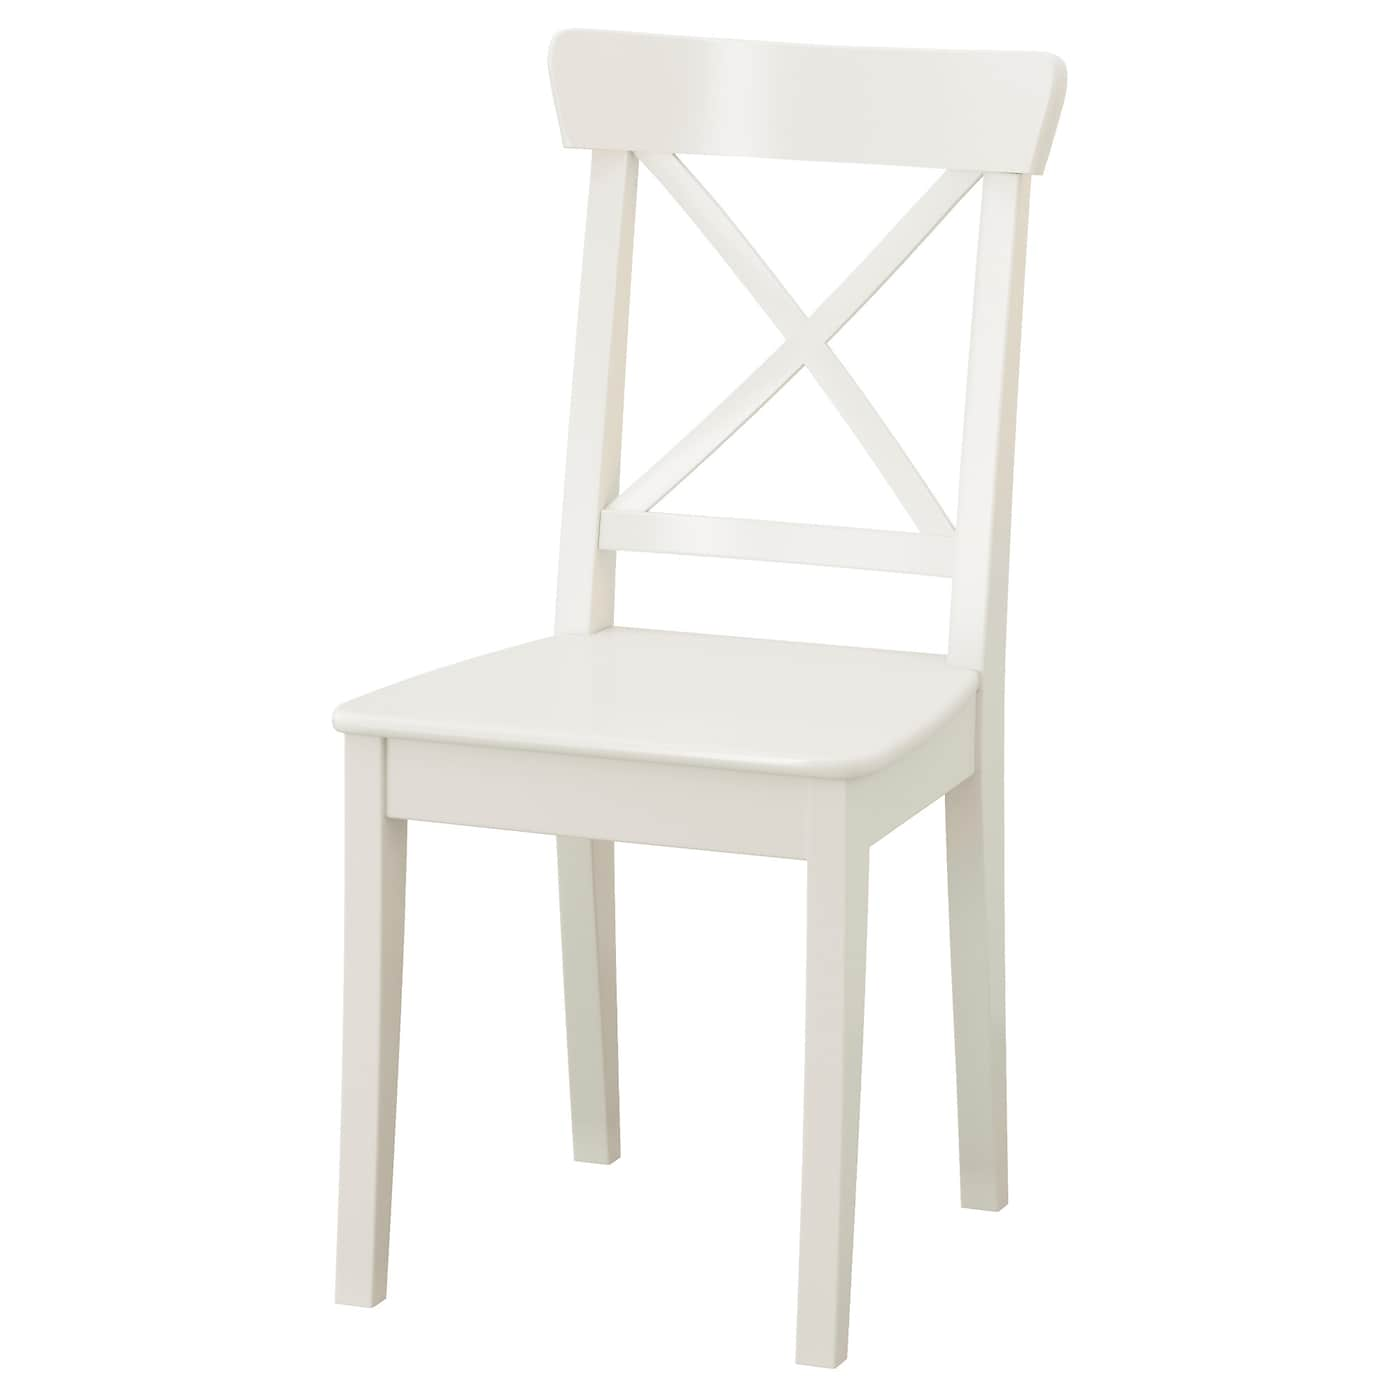 Ingolf chair white ikea for White chair